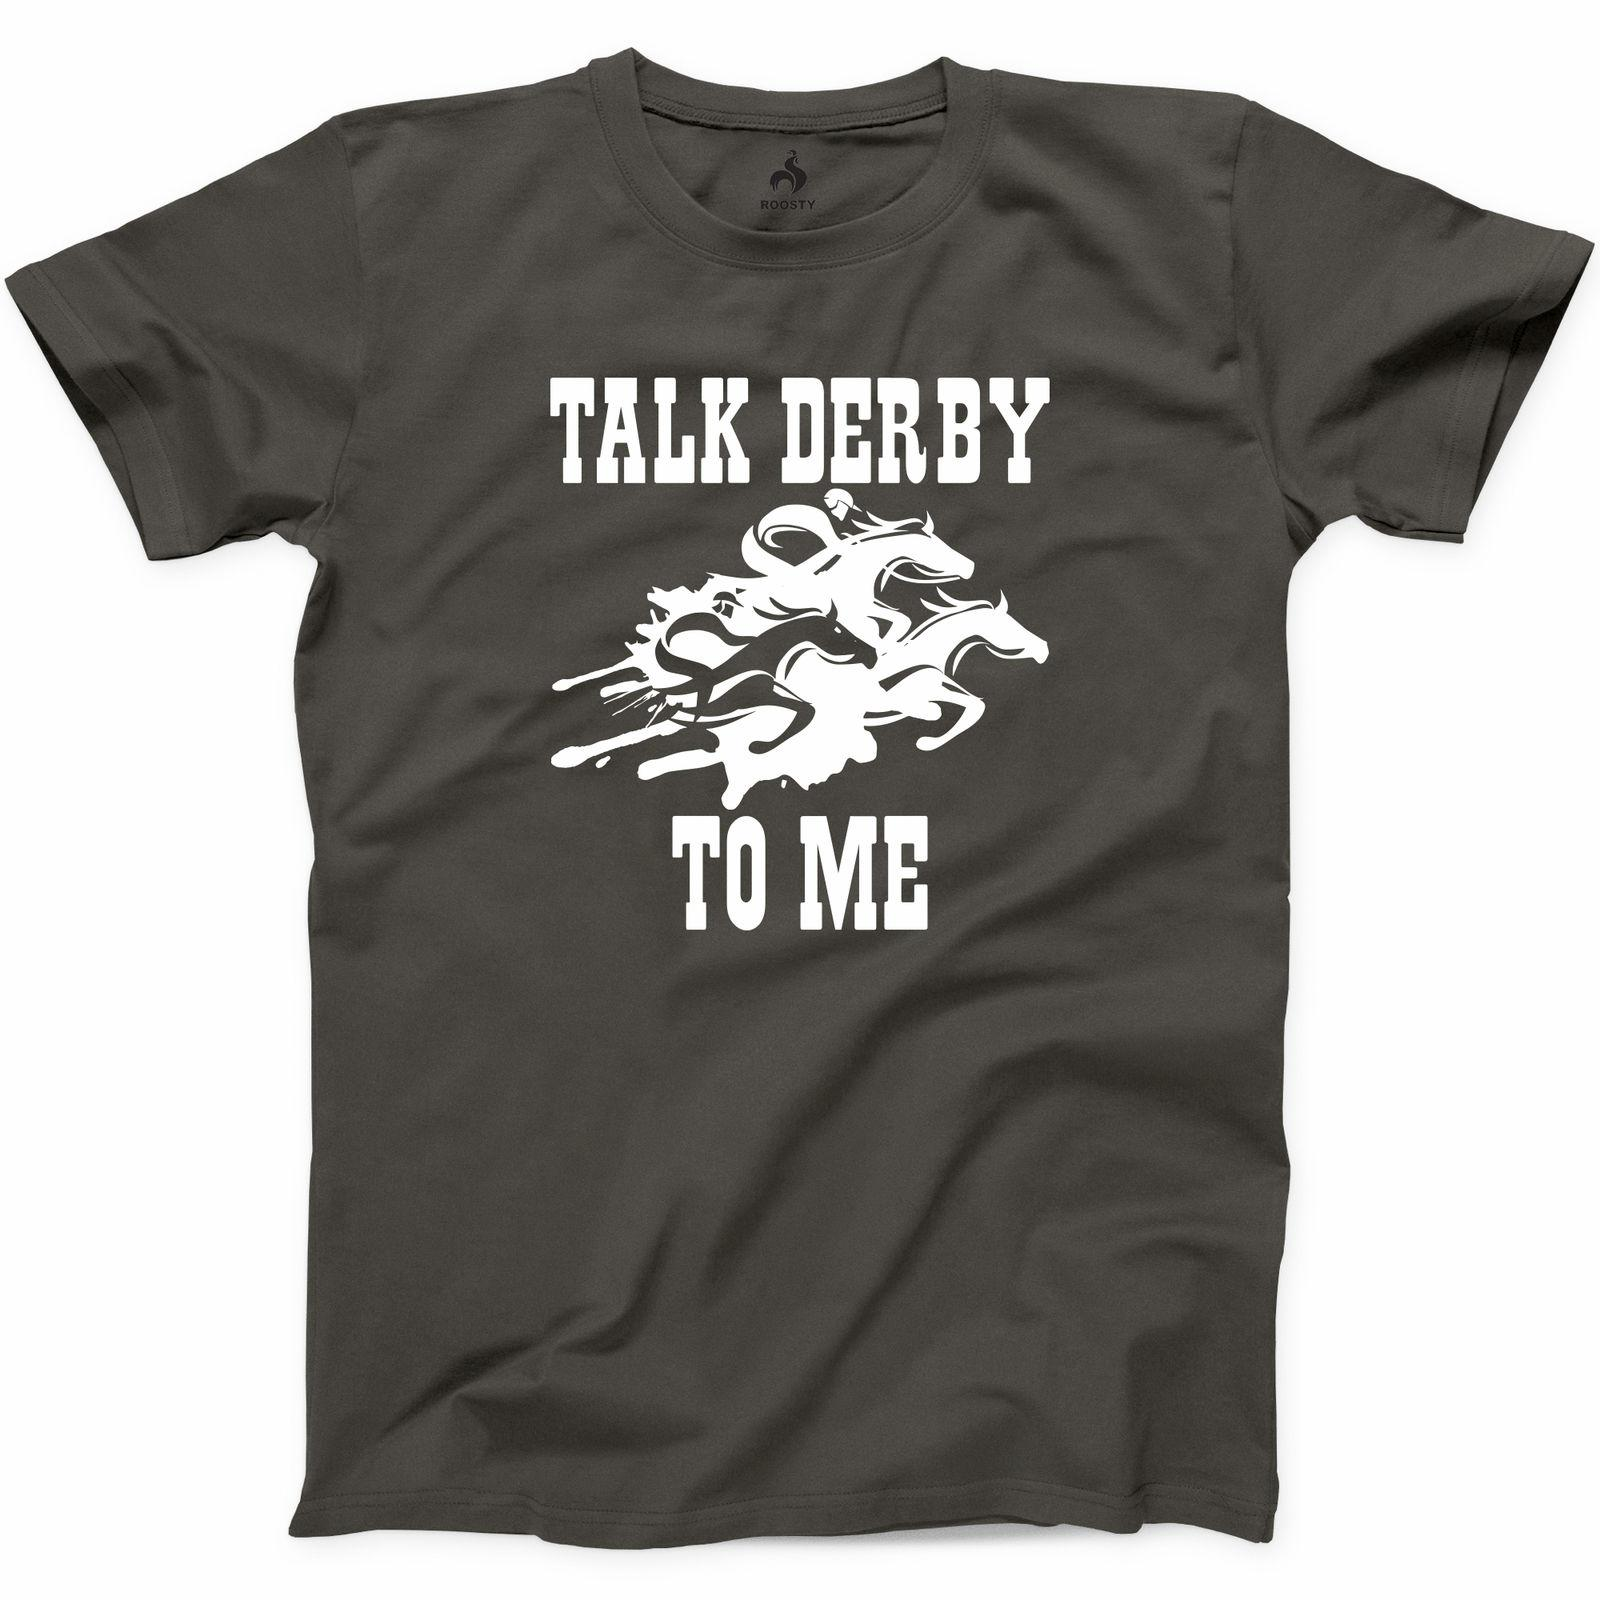 42a7accc6 Talk Derby To Me T Shirt Horse Race Funny Kentucky Derby Graphic Tee S  3XLFunny Unisex Casual Tshirt Tee Shirt For Sale Worlds Funniest T Shirts  From ...